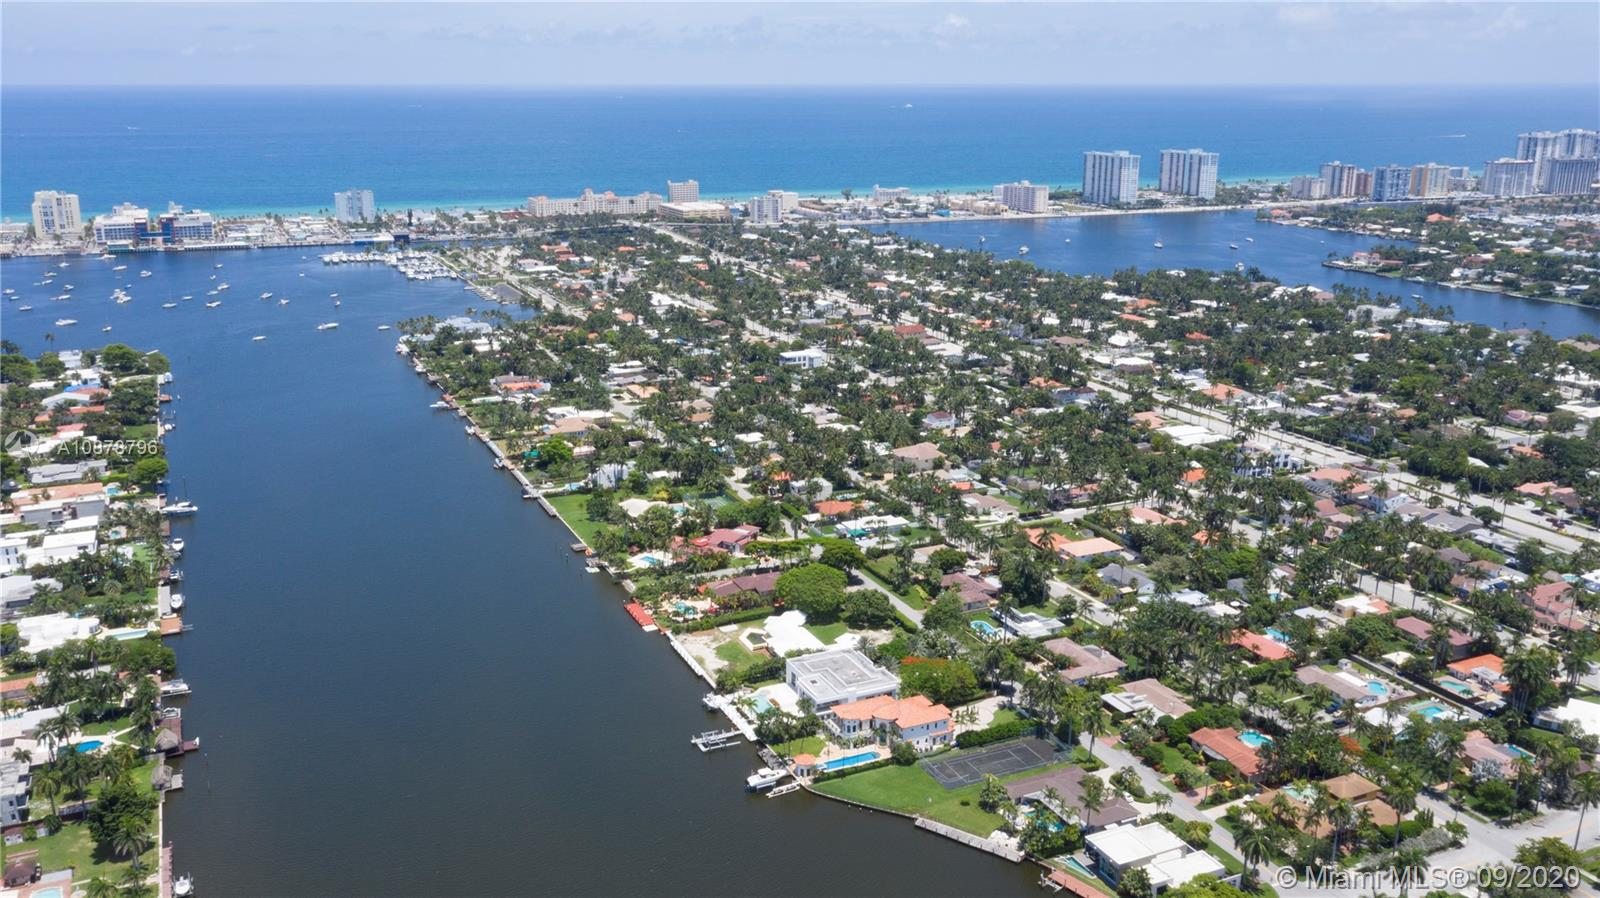 1108 S Northlake Dr  For Sale A10878796, FL